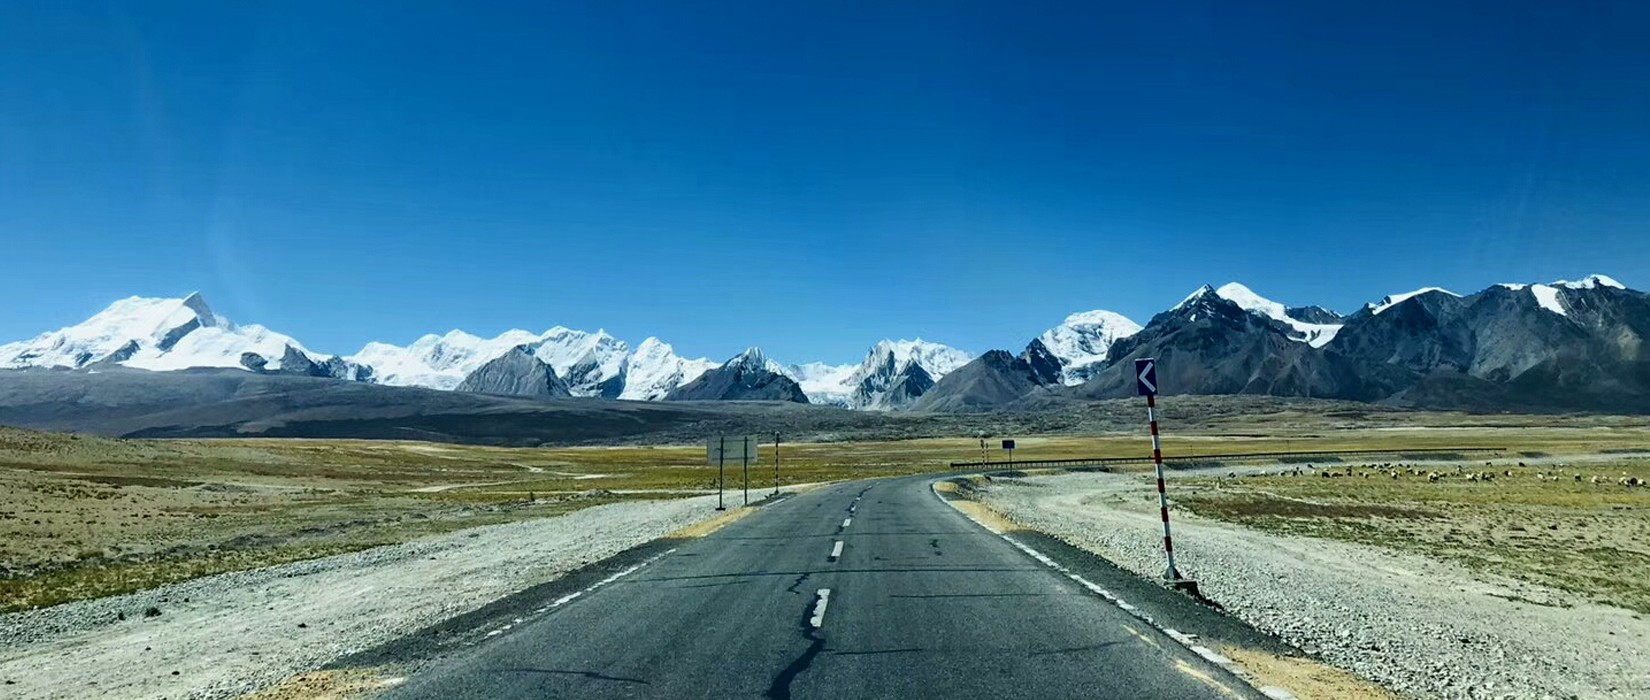 Highway to Mt. Kailash